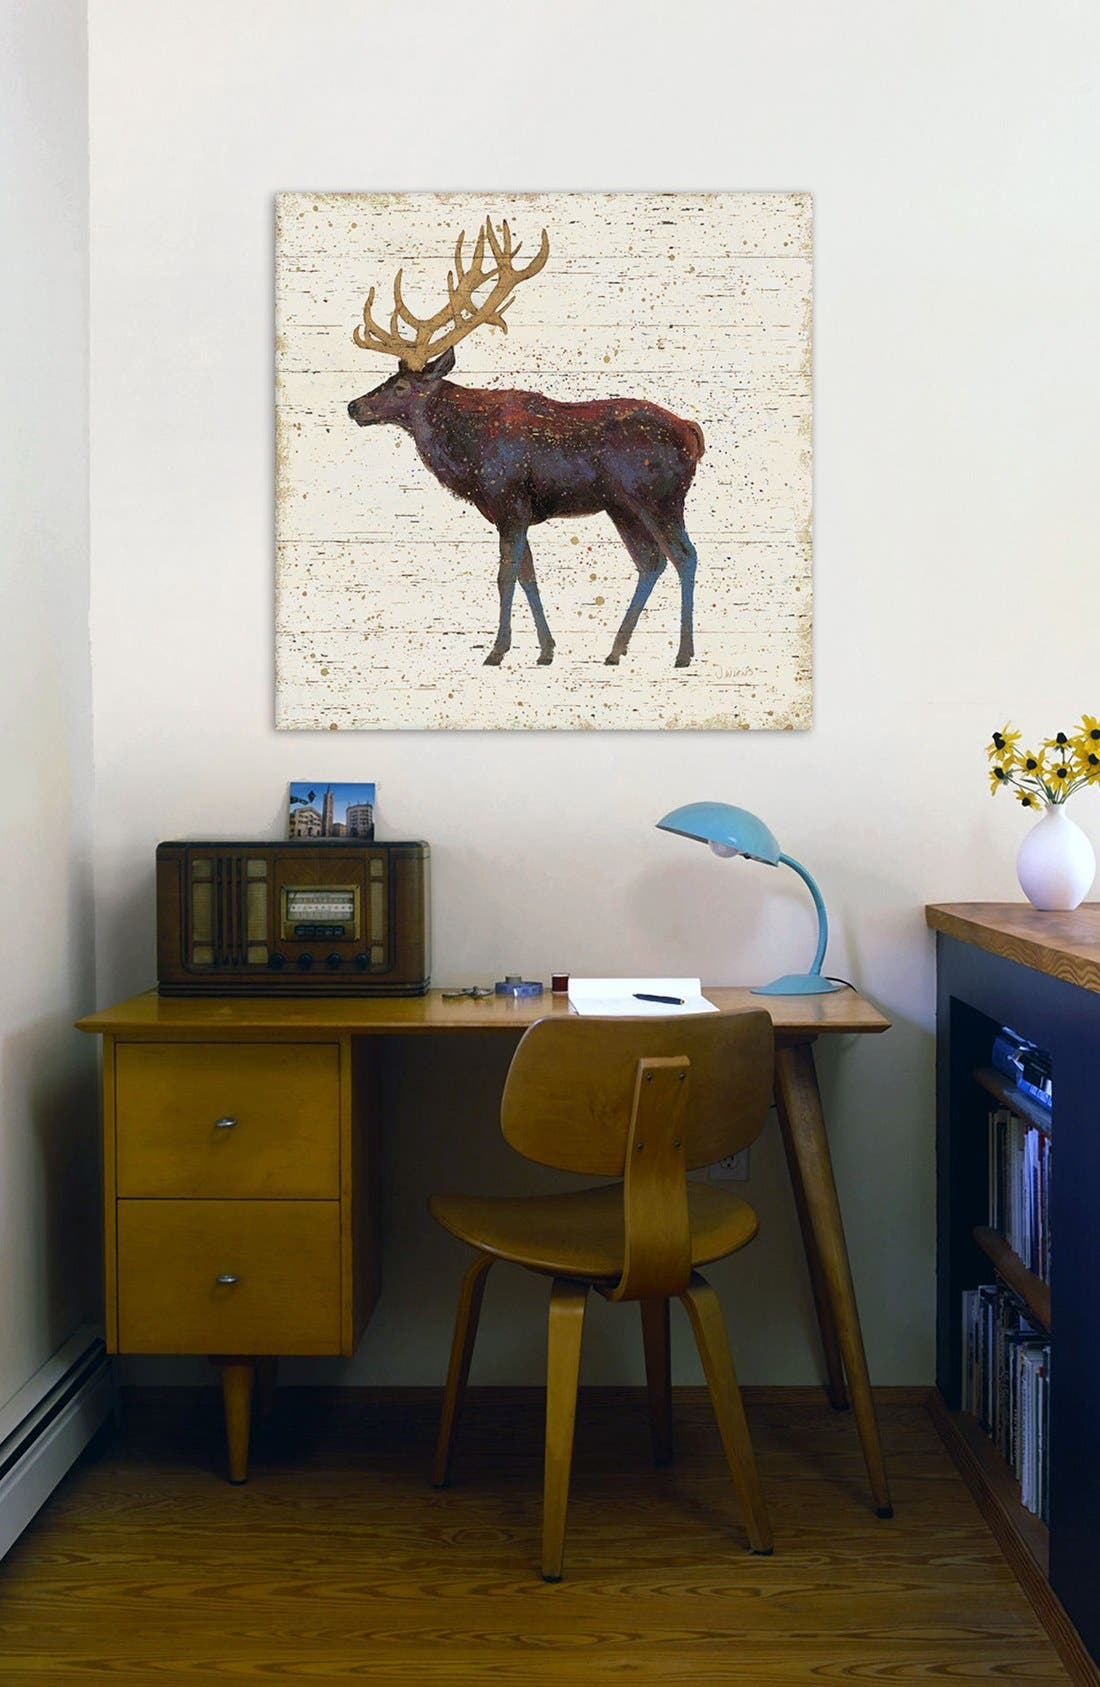 'Golden Nature II' Giclée Print Canvas Art,                             Alternate thumbnail 2, color,                             Brown